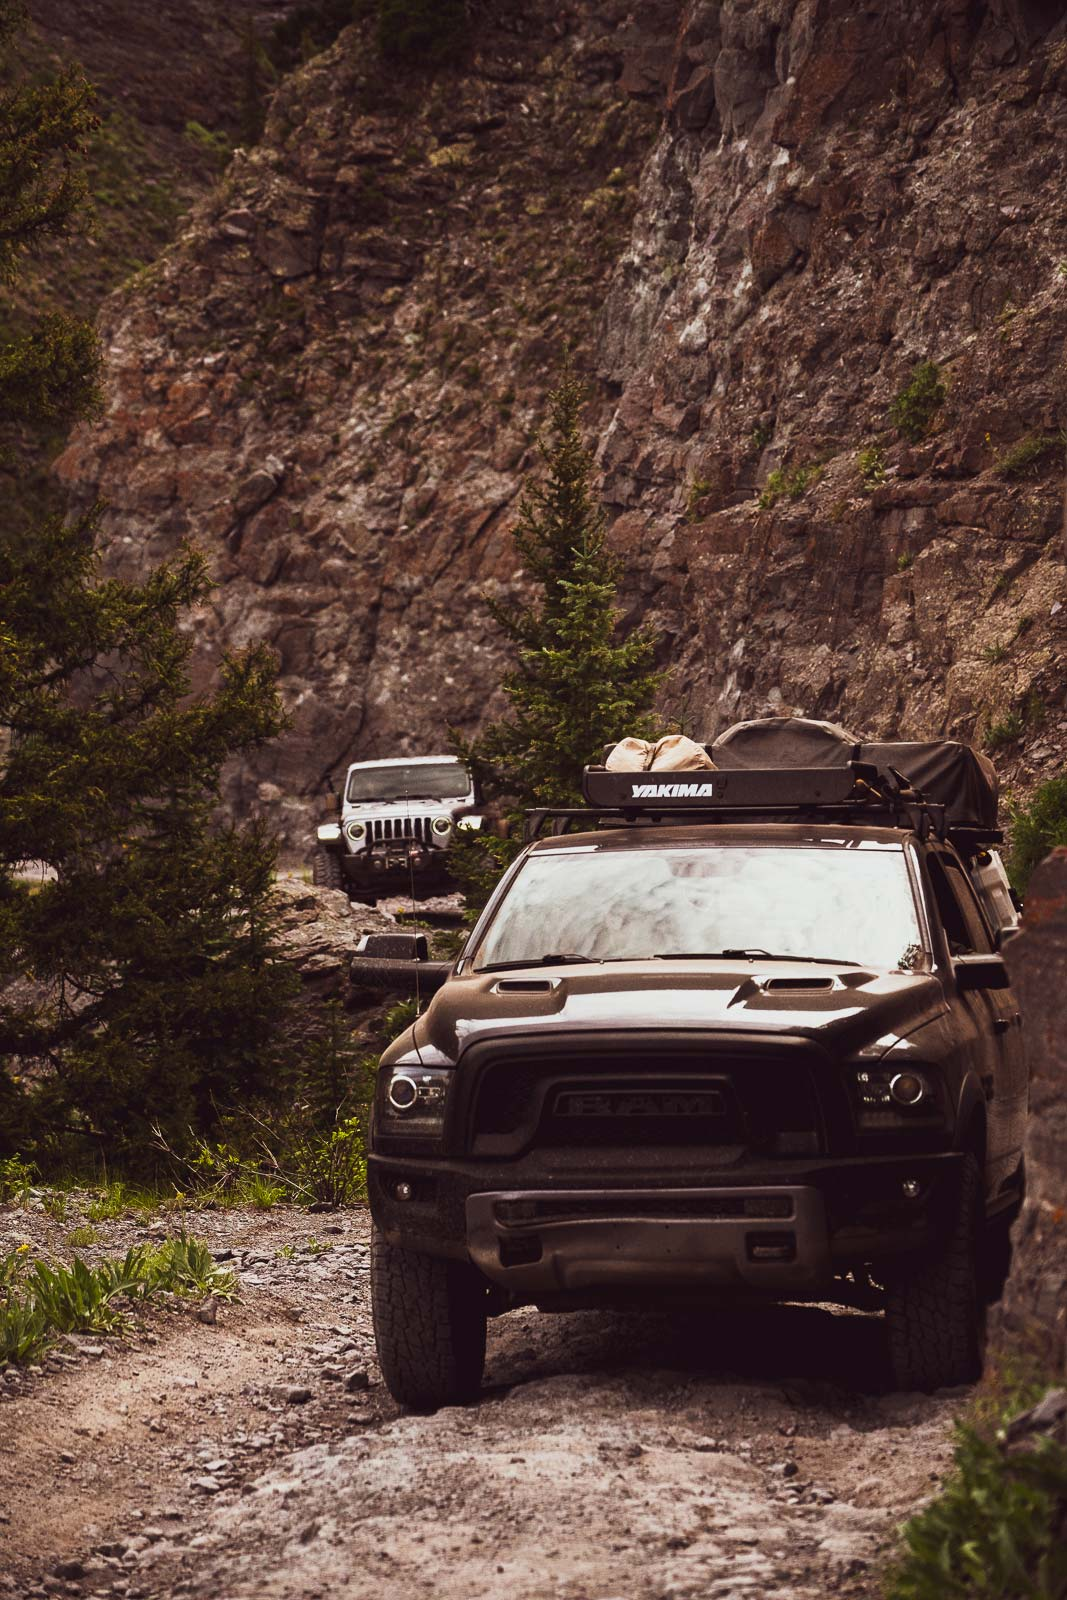 Shock Surplus Moab and Ouray Overlanding Trip 2019